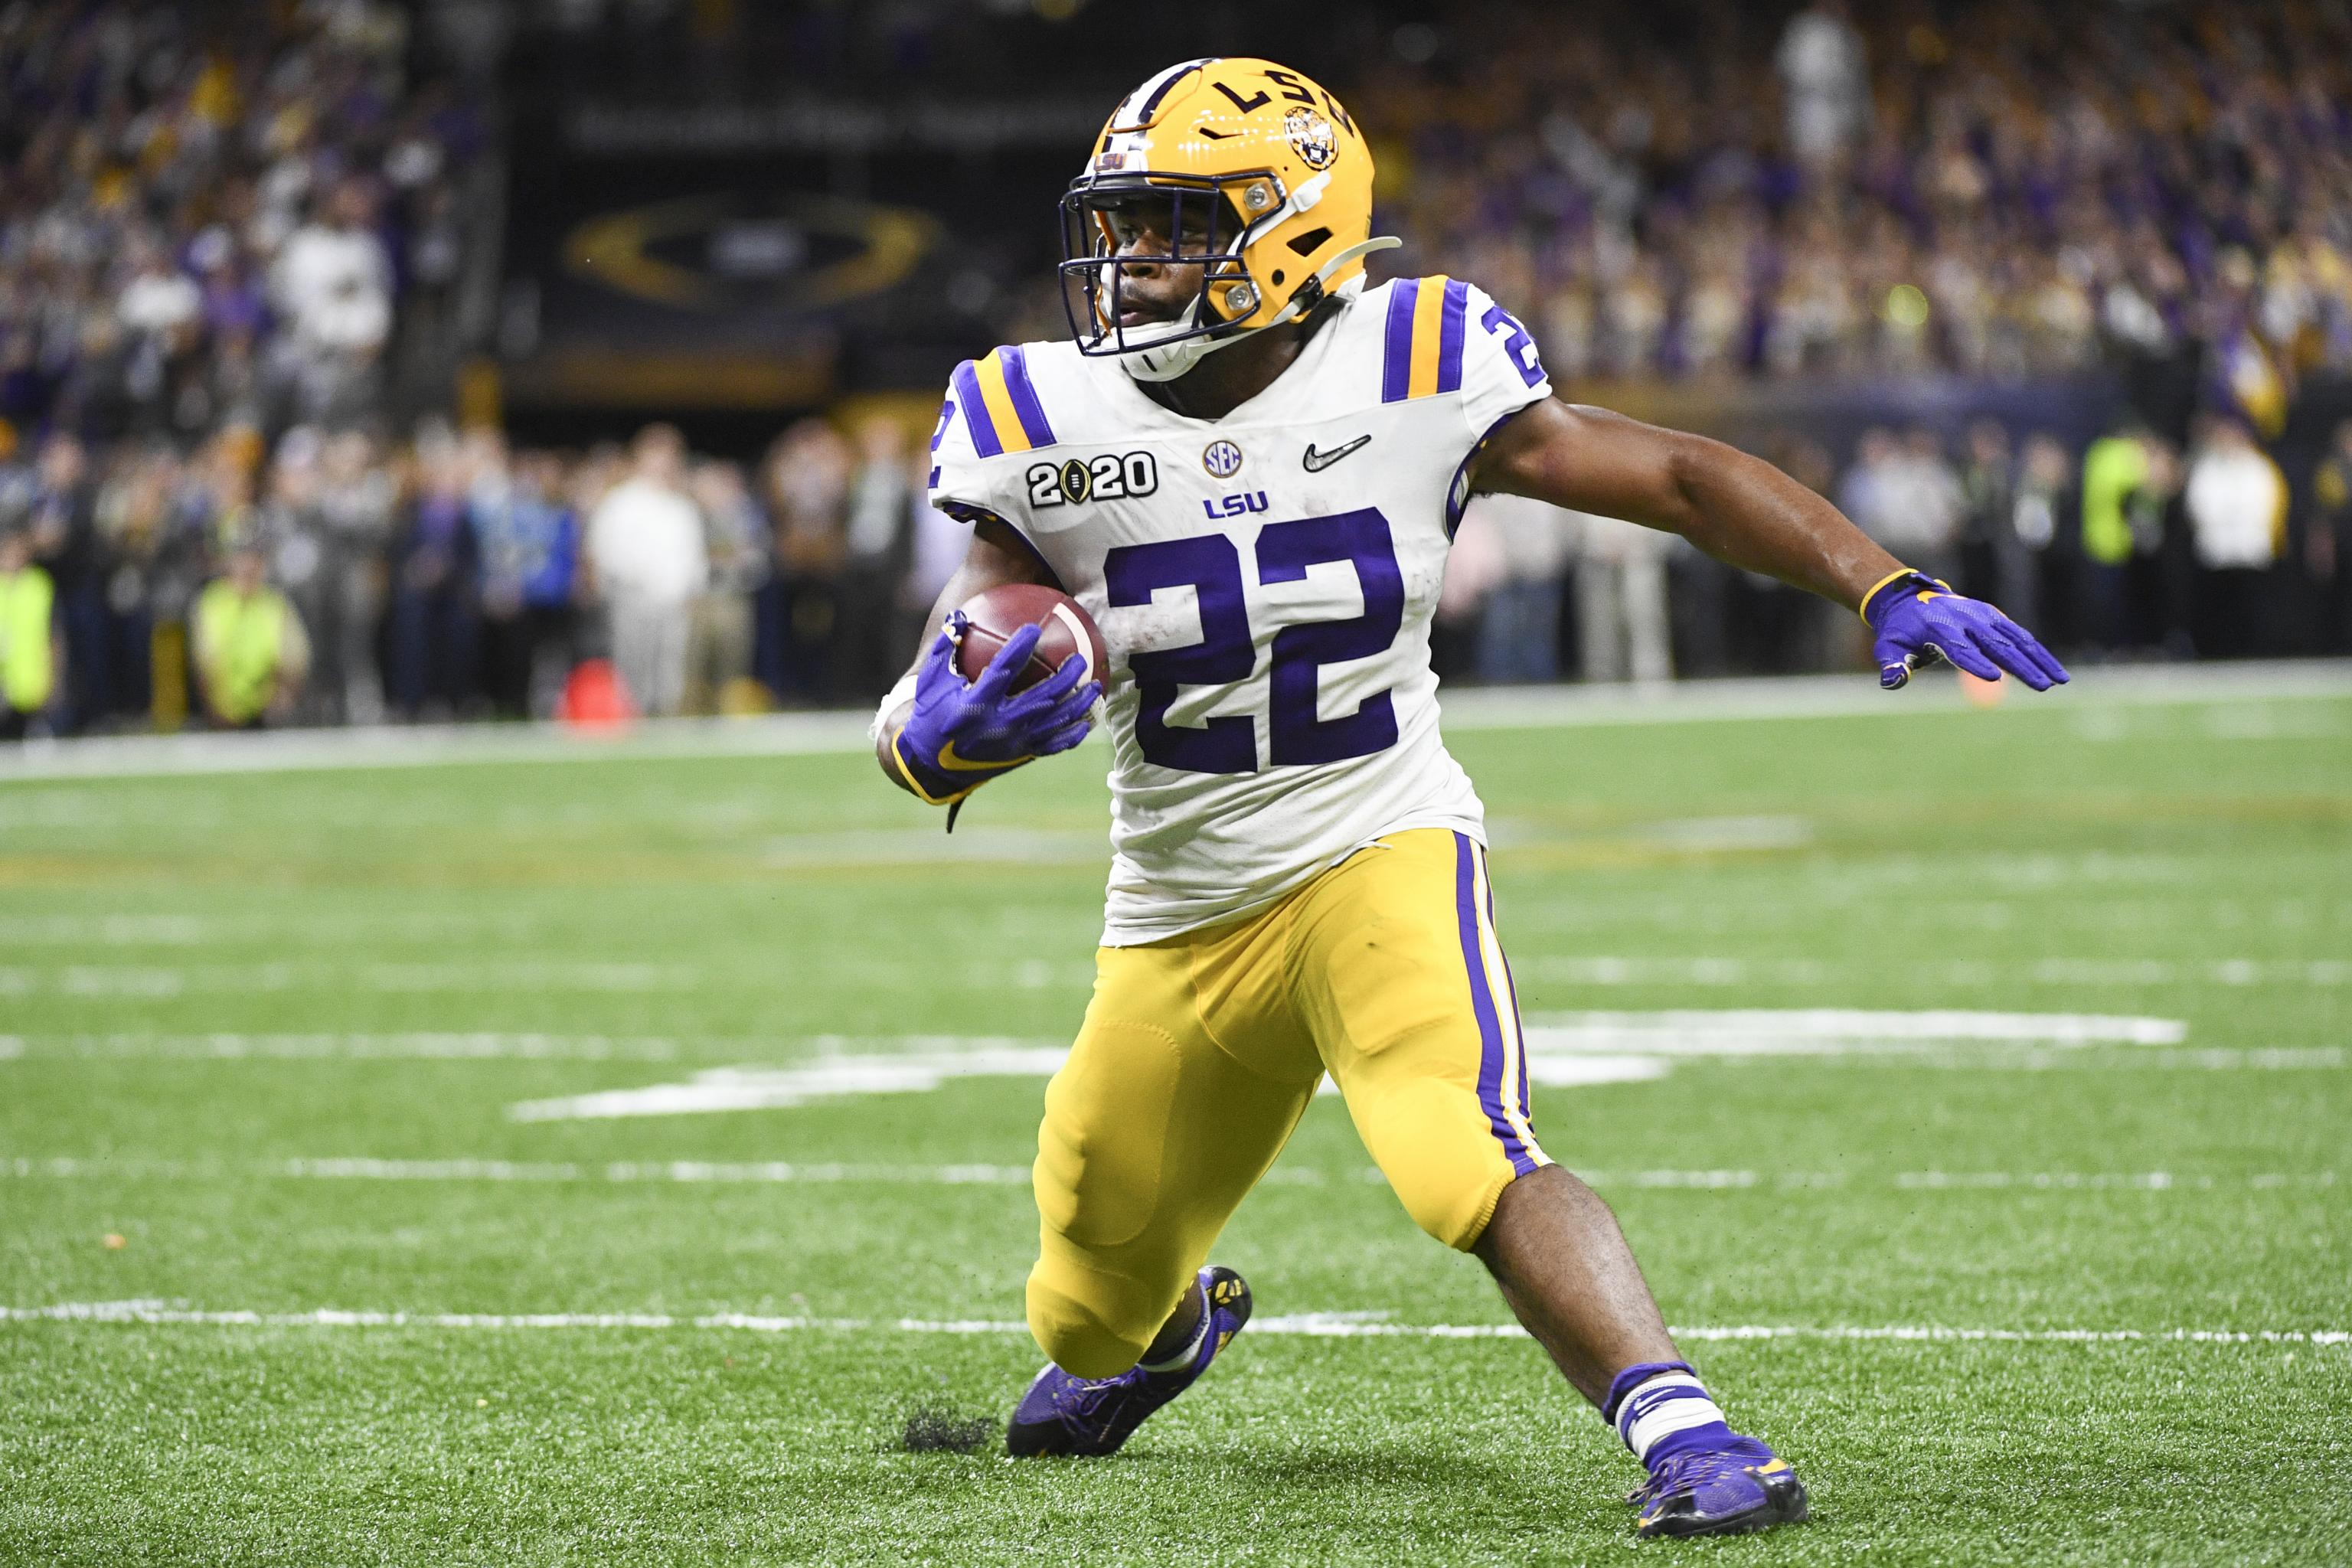 LSU's Clyde Edwards-Helaire Declares for 2020 NFL Draft After ...